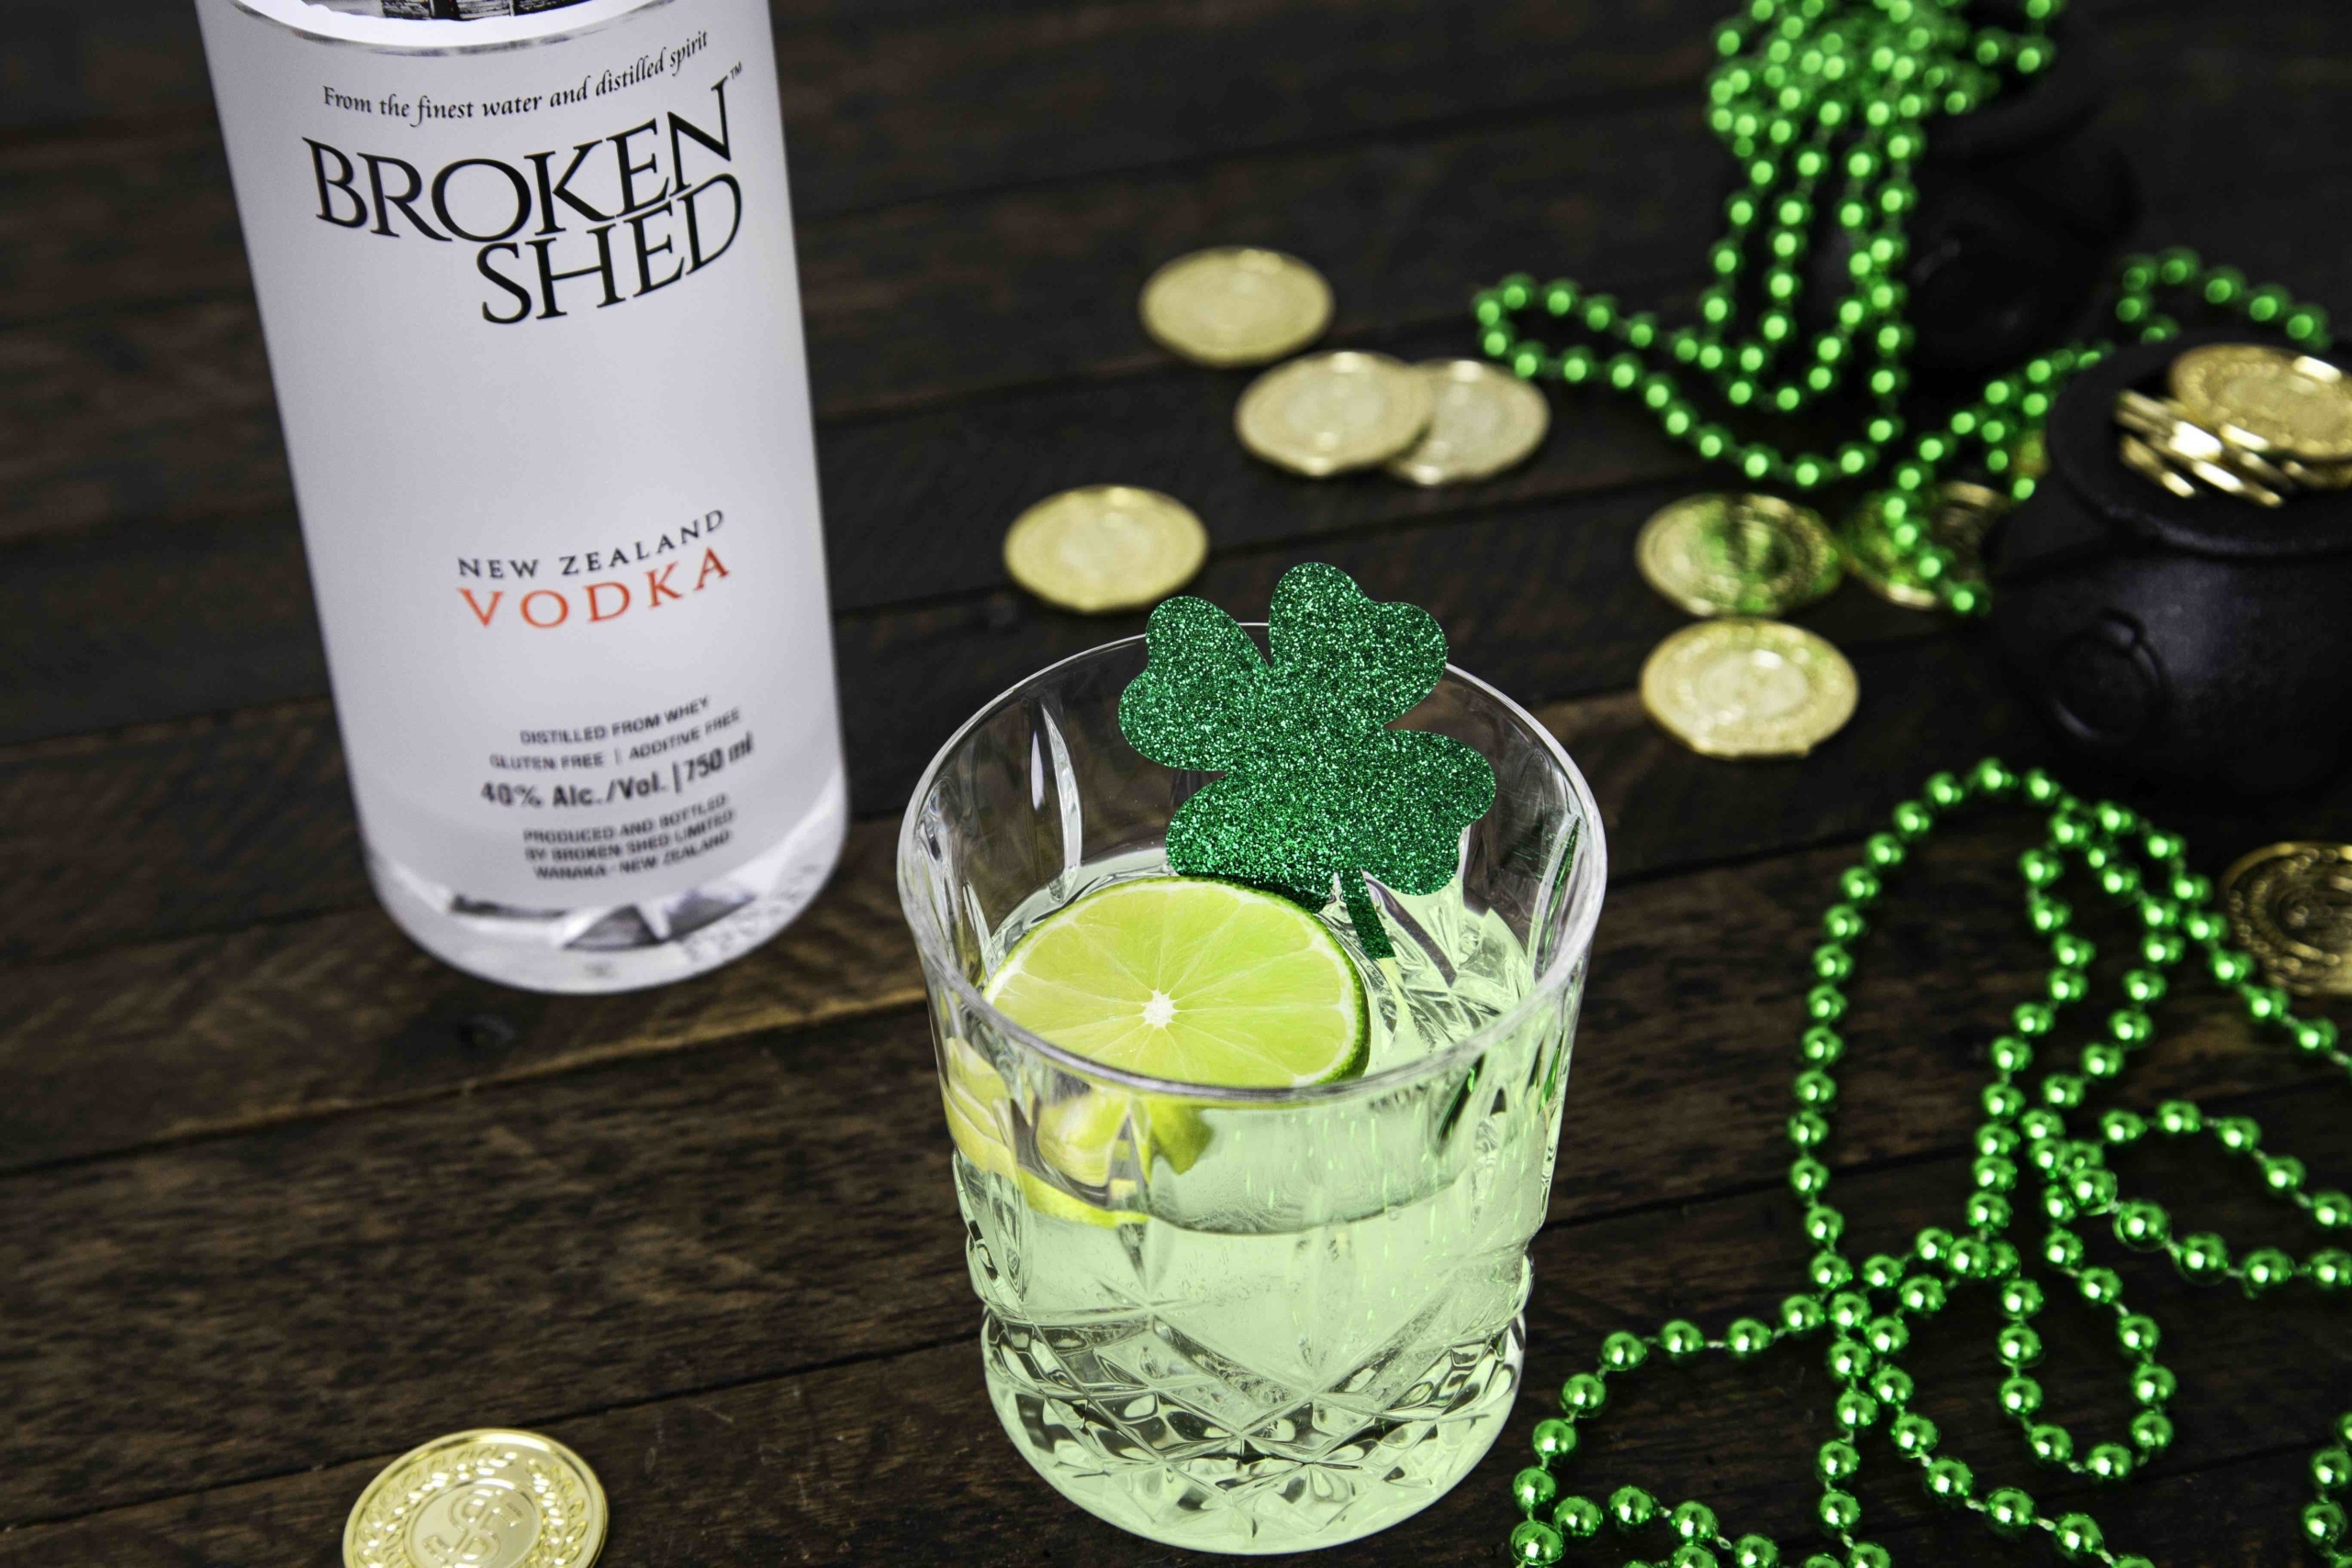 This Vodka Cocktail Is One Of the St Patrick's Day Cocktail Recipes For Home Entertaining